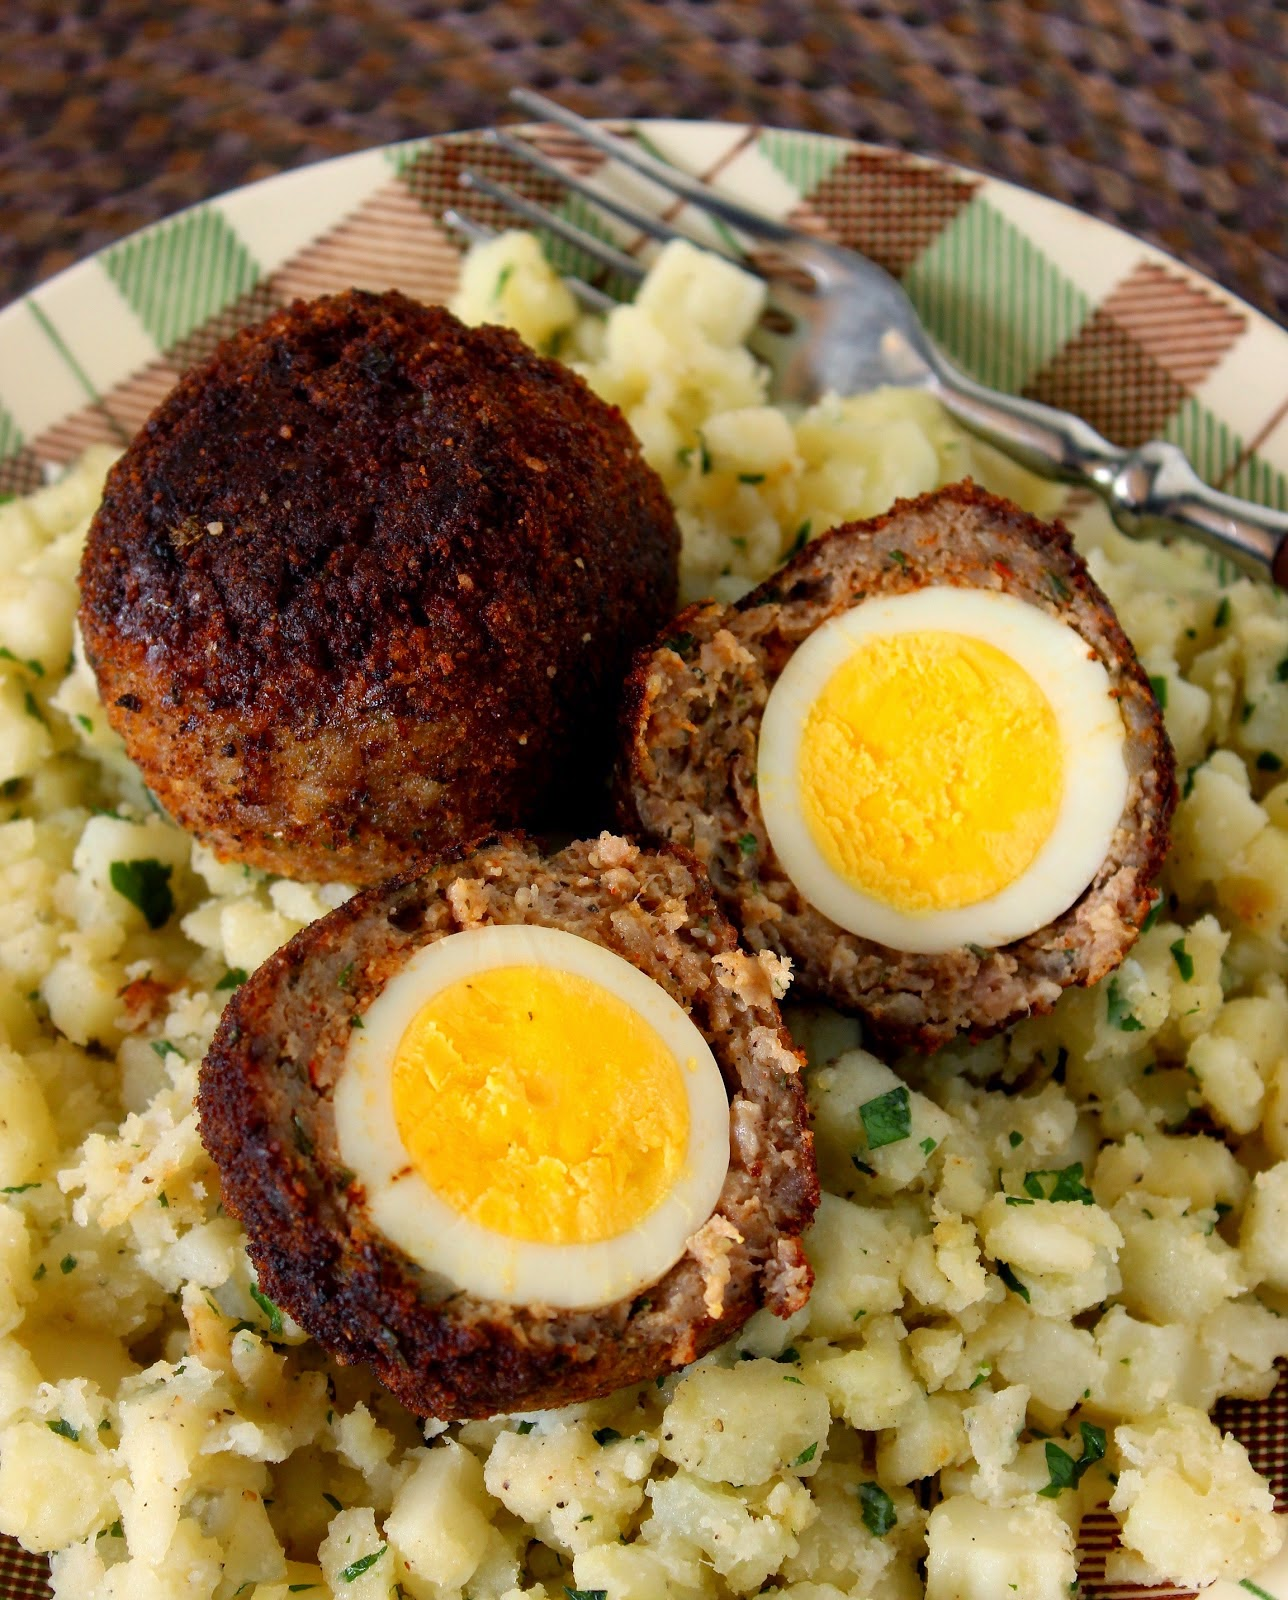 http://www.kudoskitchenbyrenee.com/2014/04/scotch-eggs-for-src.html